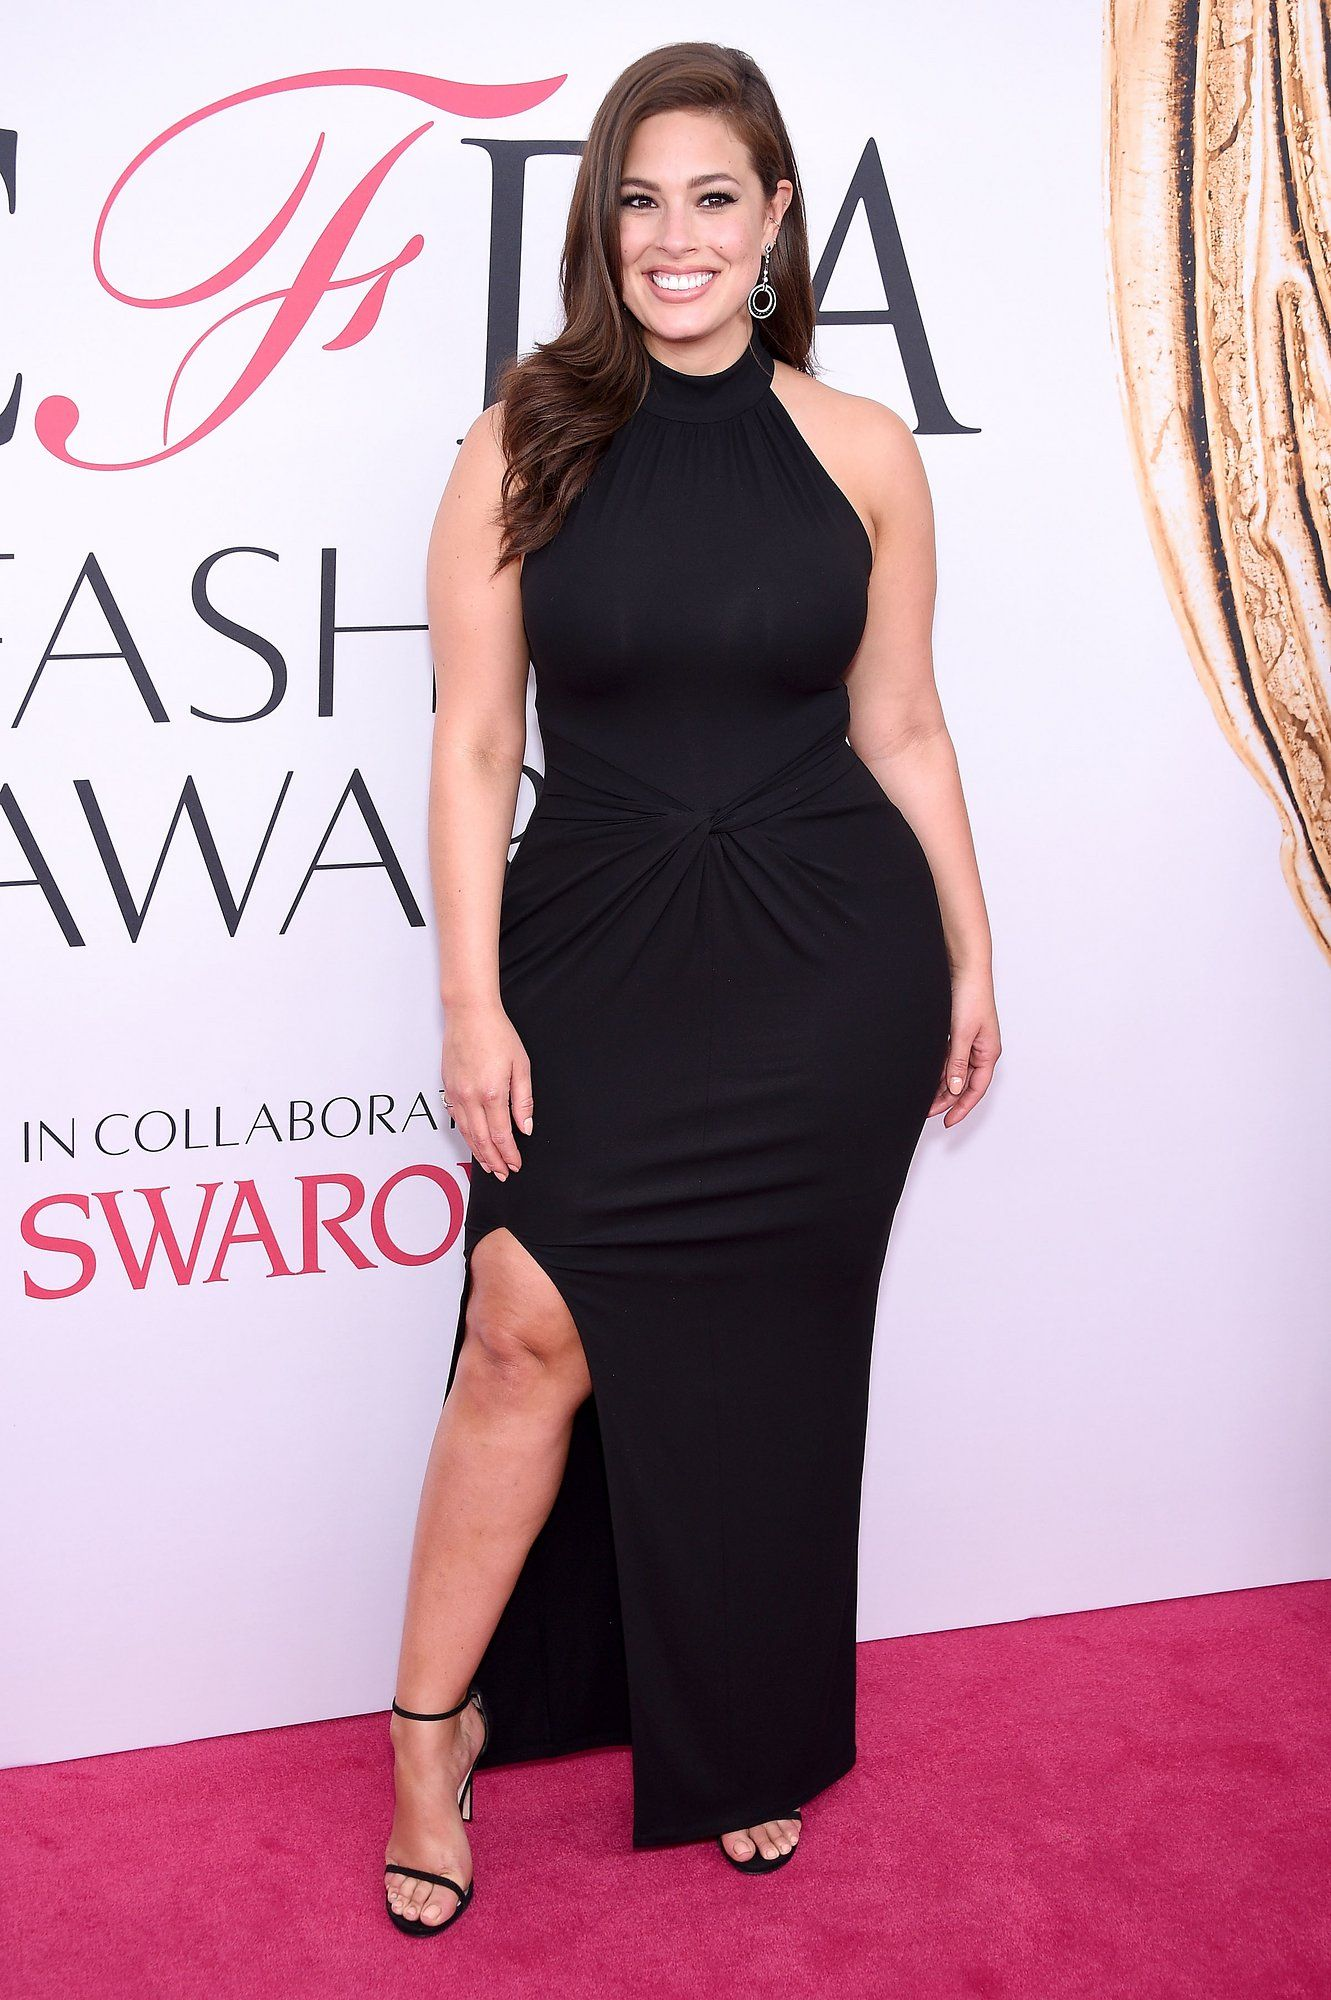 Cfda awards fashionulive from the red carpet michael kors